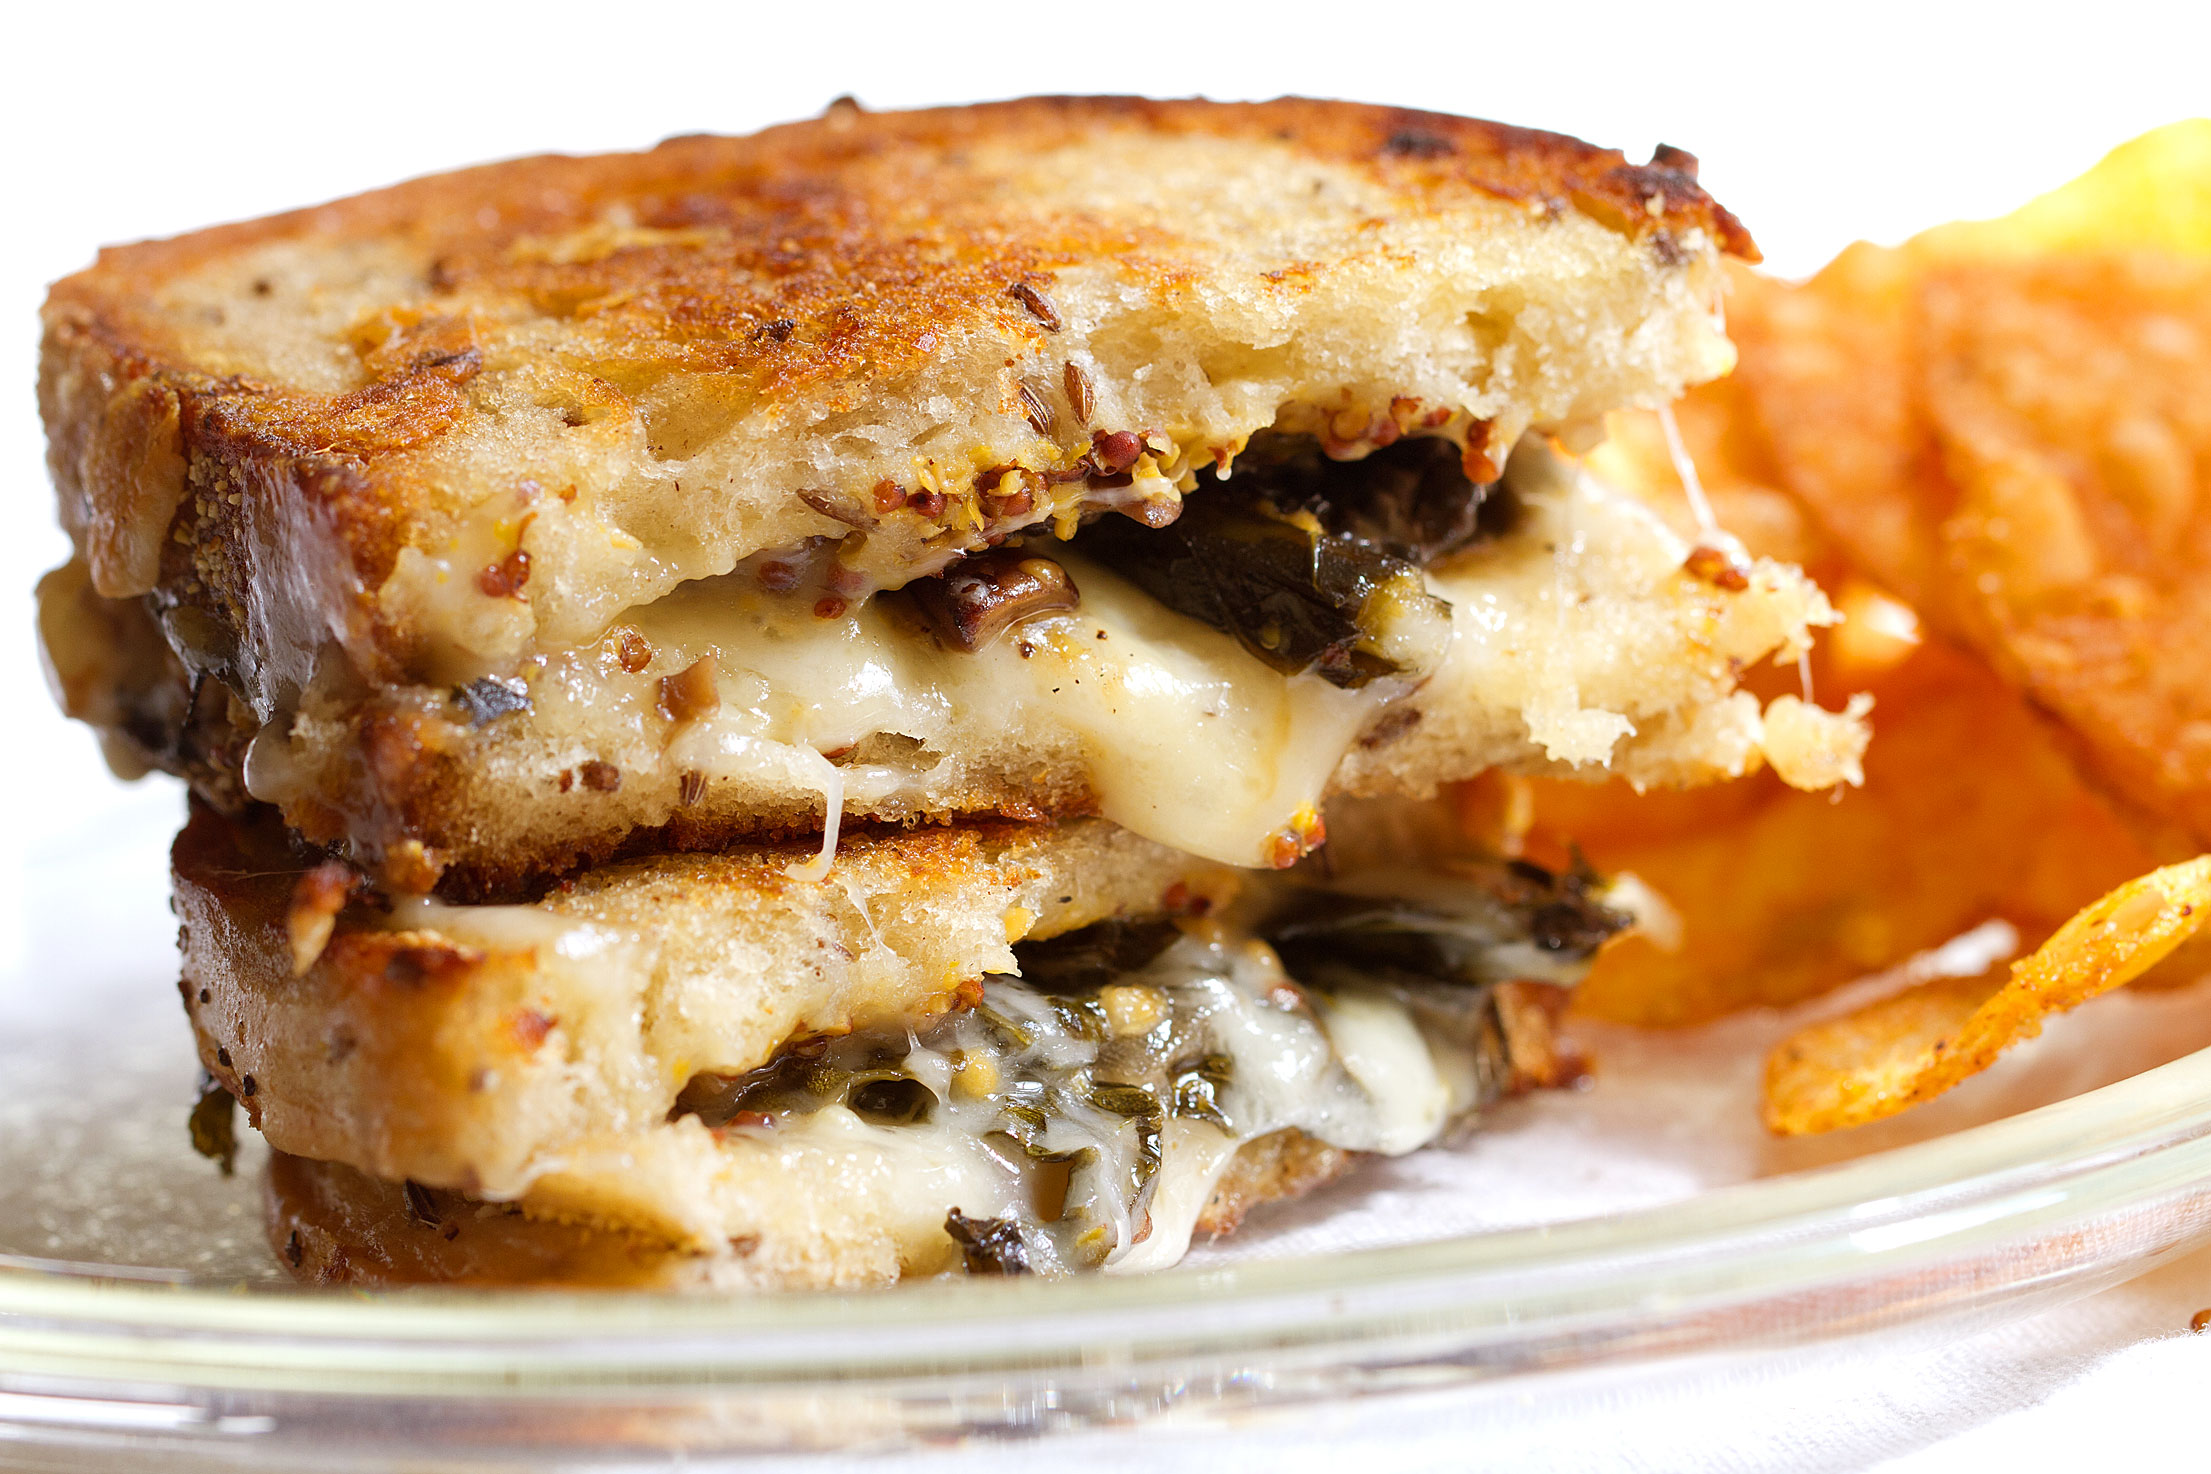 Easy Grilled Cheese Sandwich with Mushrooms and Kale